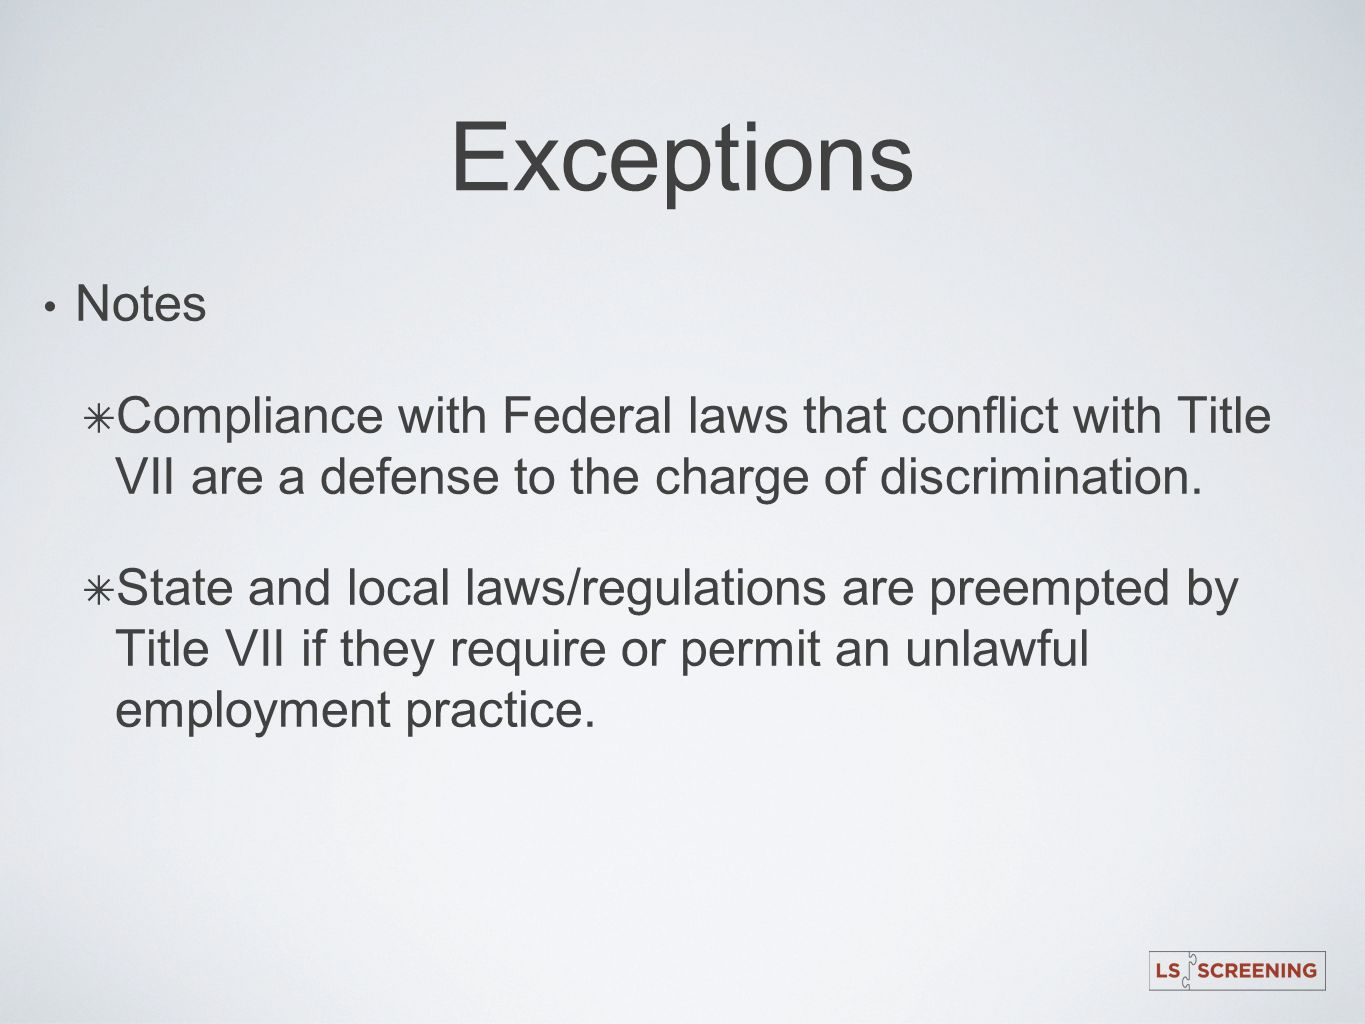 Exceptions Notes. Compliance with Federal laws that conflict with Title VII are a defense to the charge of discrimination.